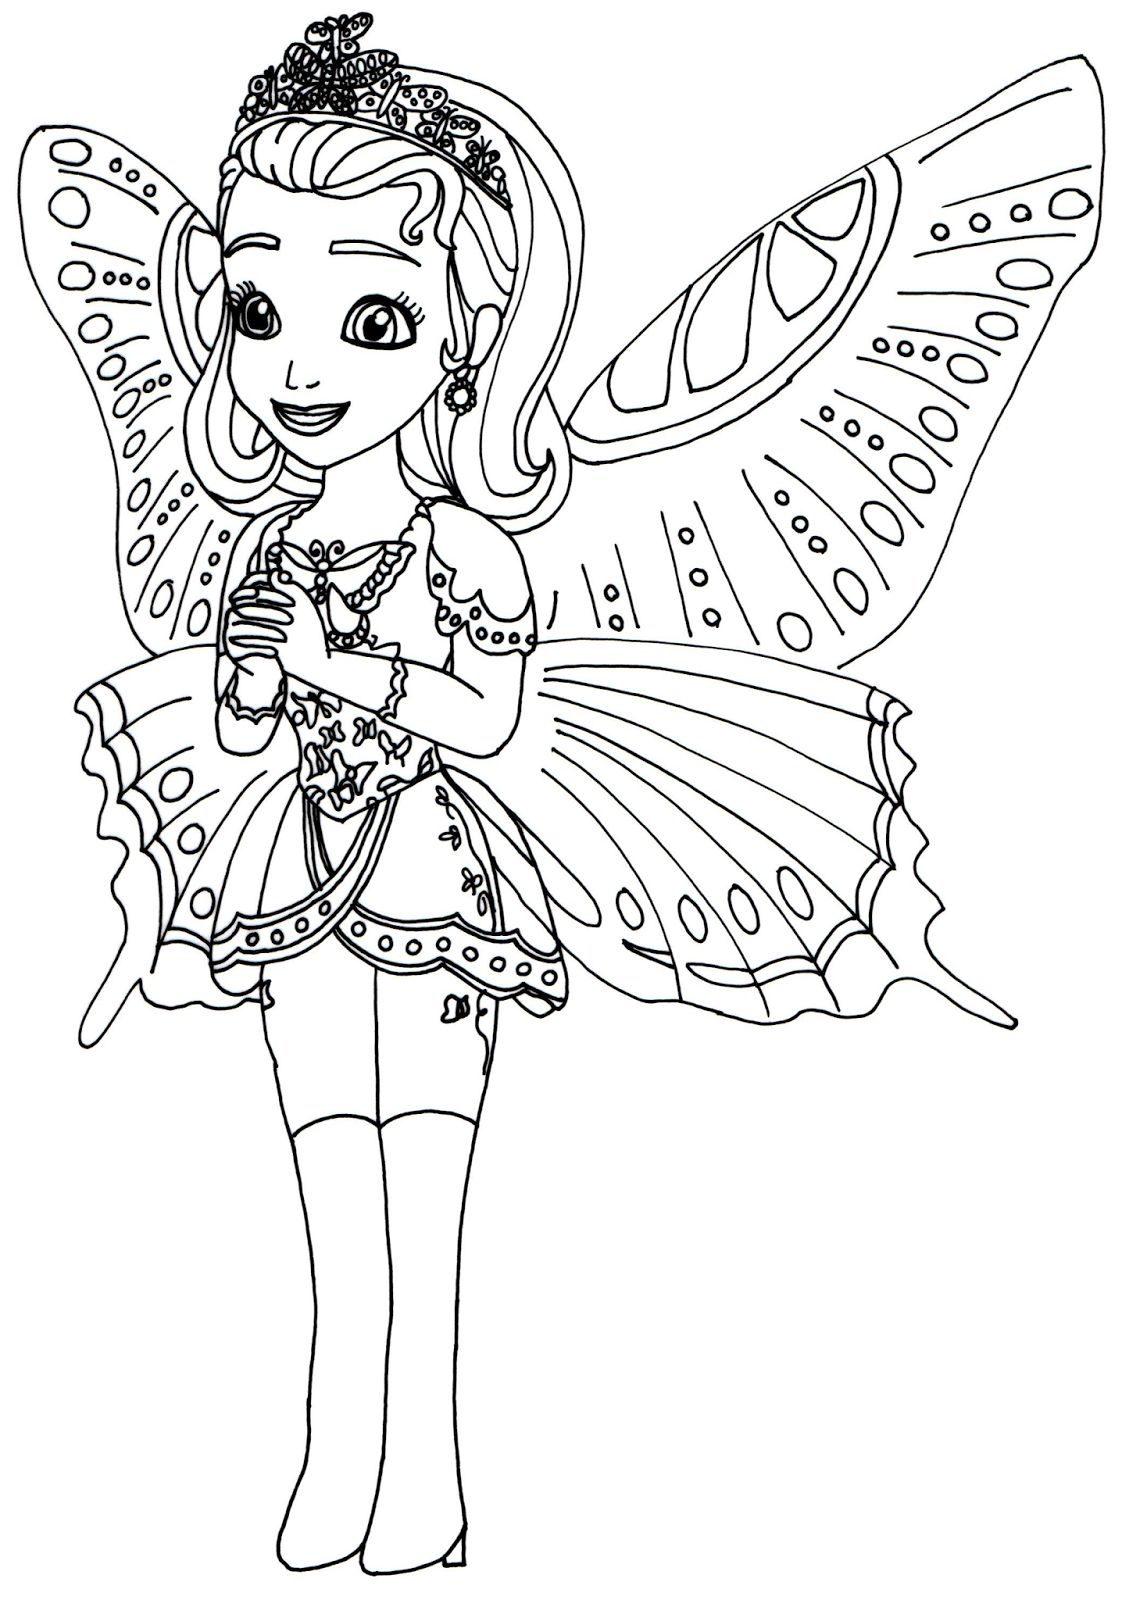 Sofia The First Coloring Pages: Princess Butterfly Sofia the First ...